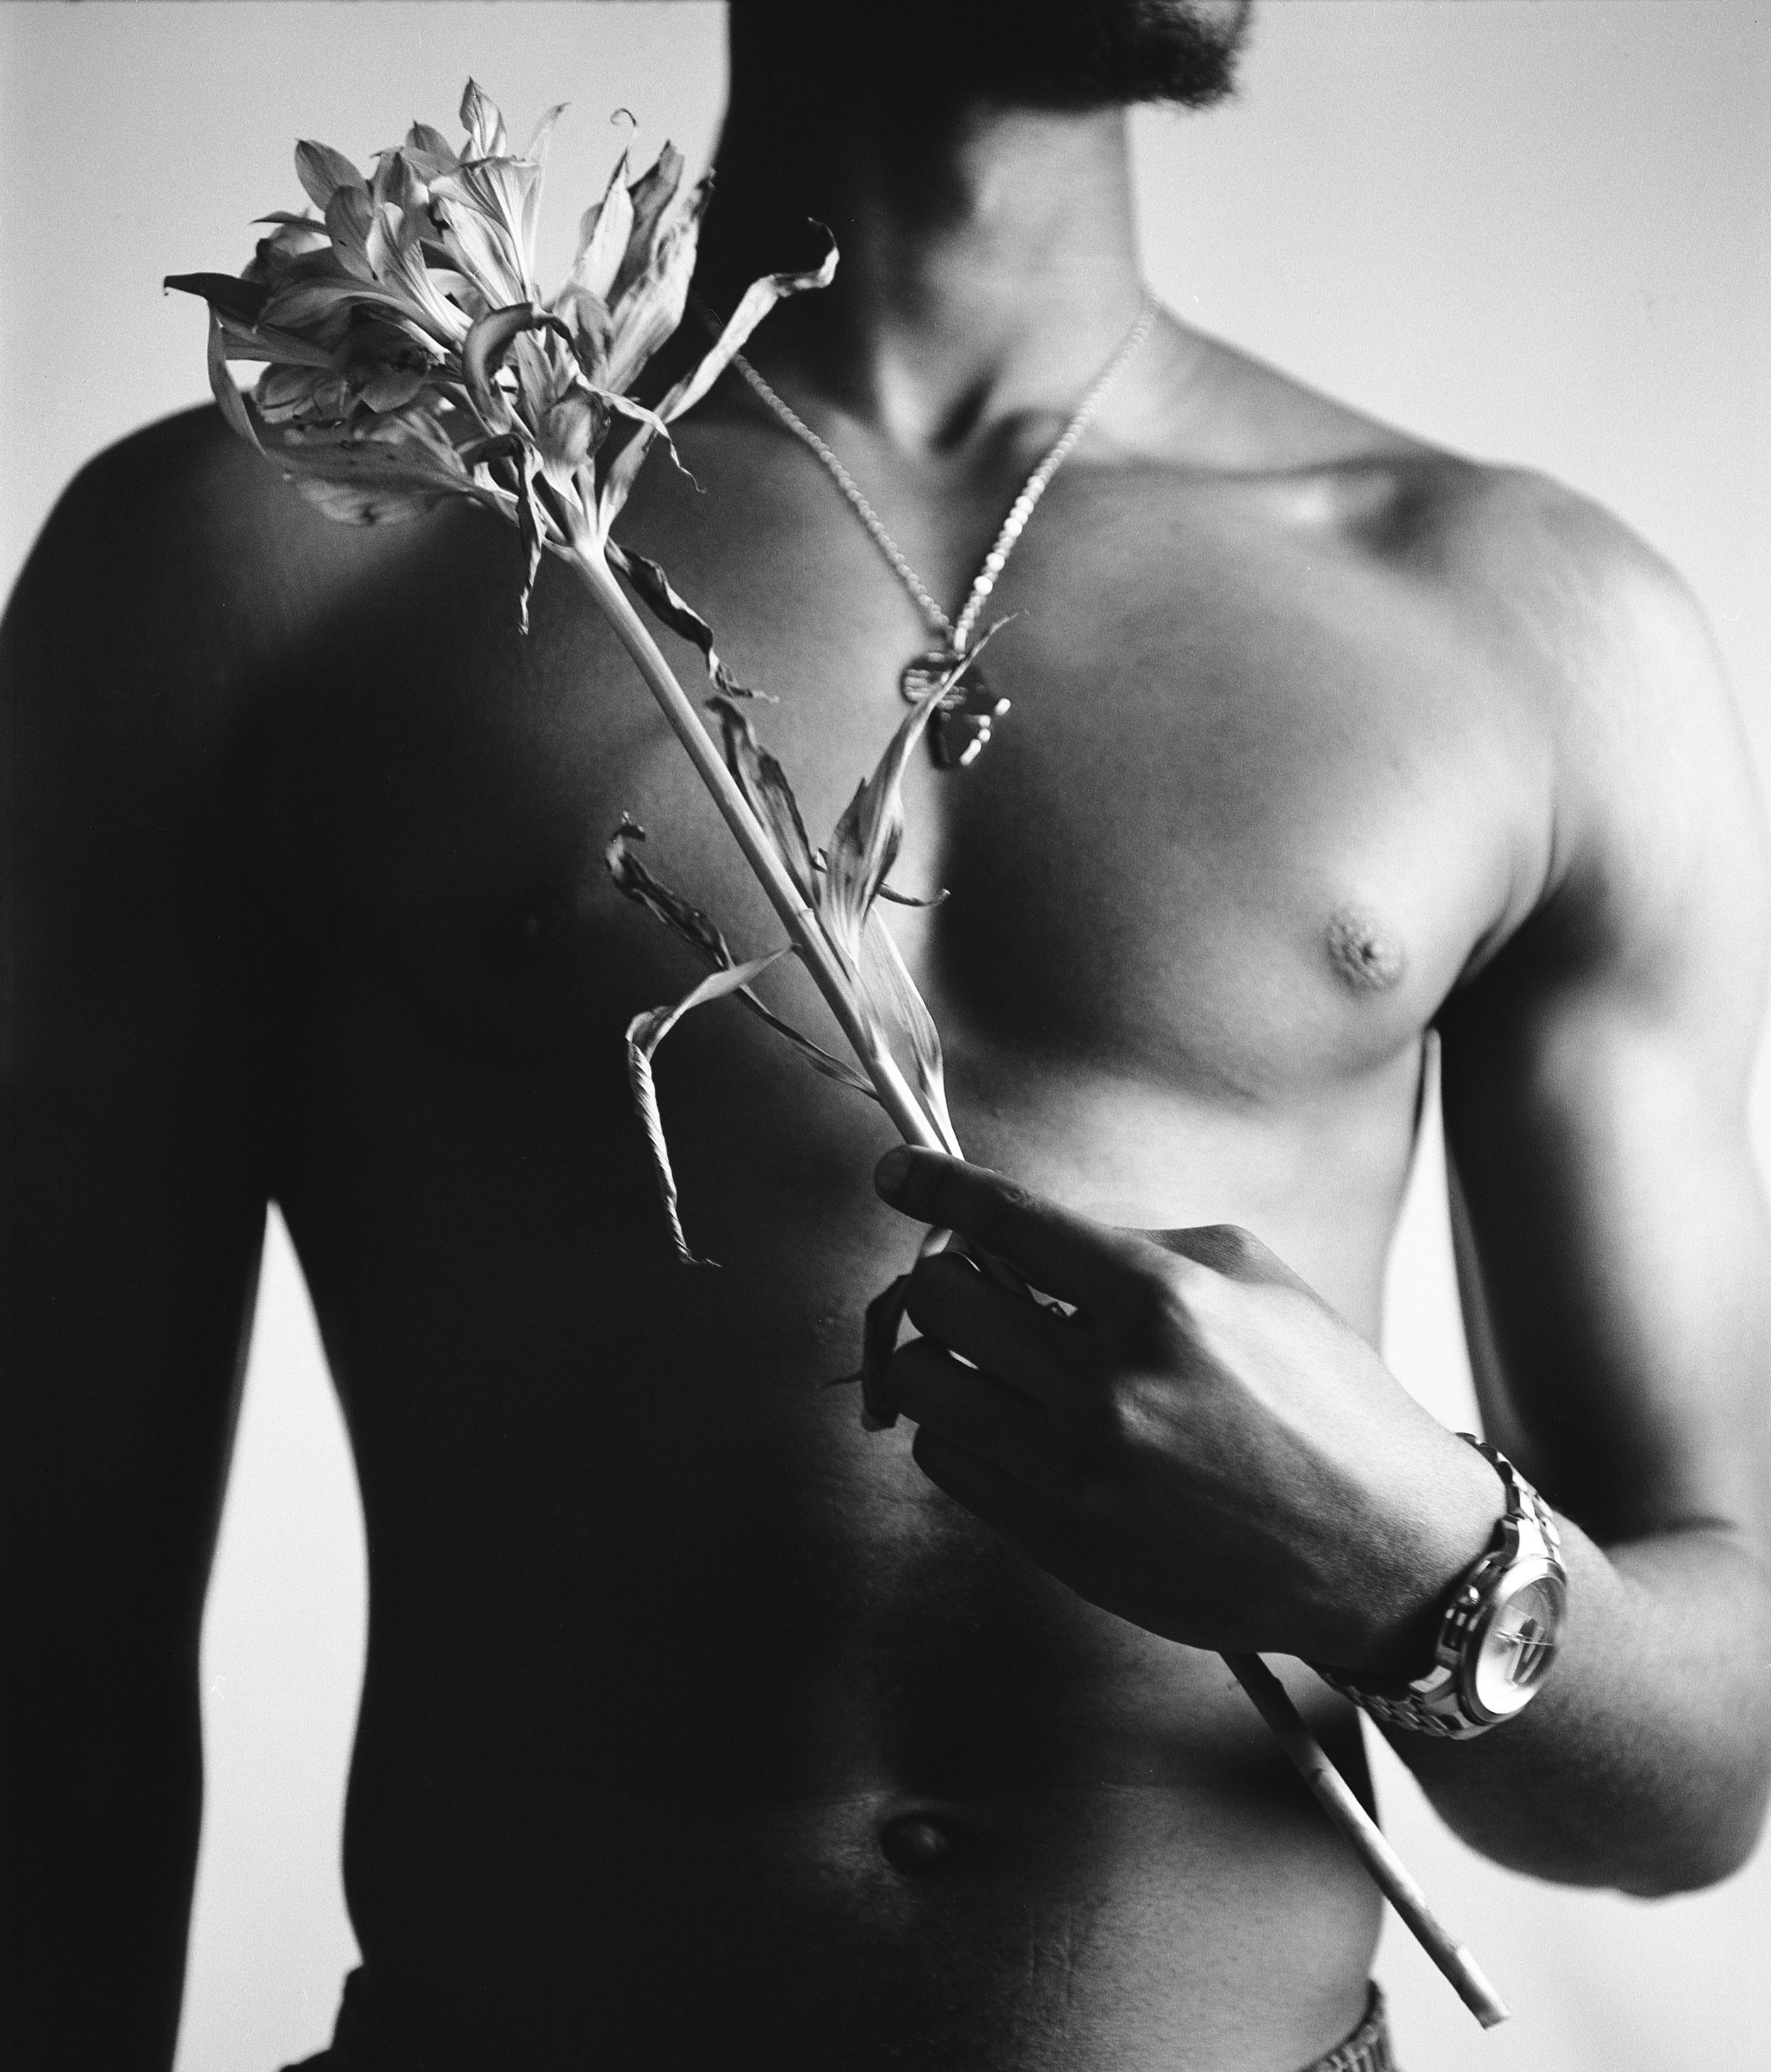 We portrayed a balance between masculinity and femininity. How do you feel about the stereotypes associated with the masculinity of the black man? - The unspoken guidelines to being a black man are harsh to say the least. The importance of the individual has even completely shrouded by hyper masculinity and in this day and age, our entire society must grow past that and treasure any black man for who he is regardless of whether he follows those unspoken guidelines or not. There are many traits that make a man a man, not just what the world or the media tells you it is.